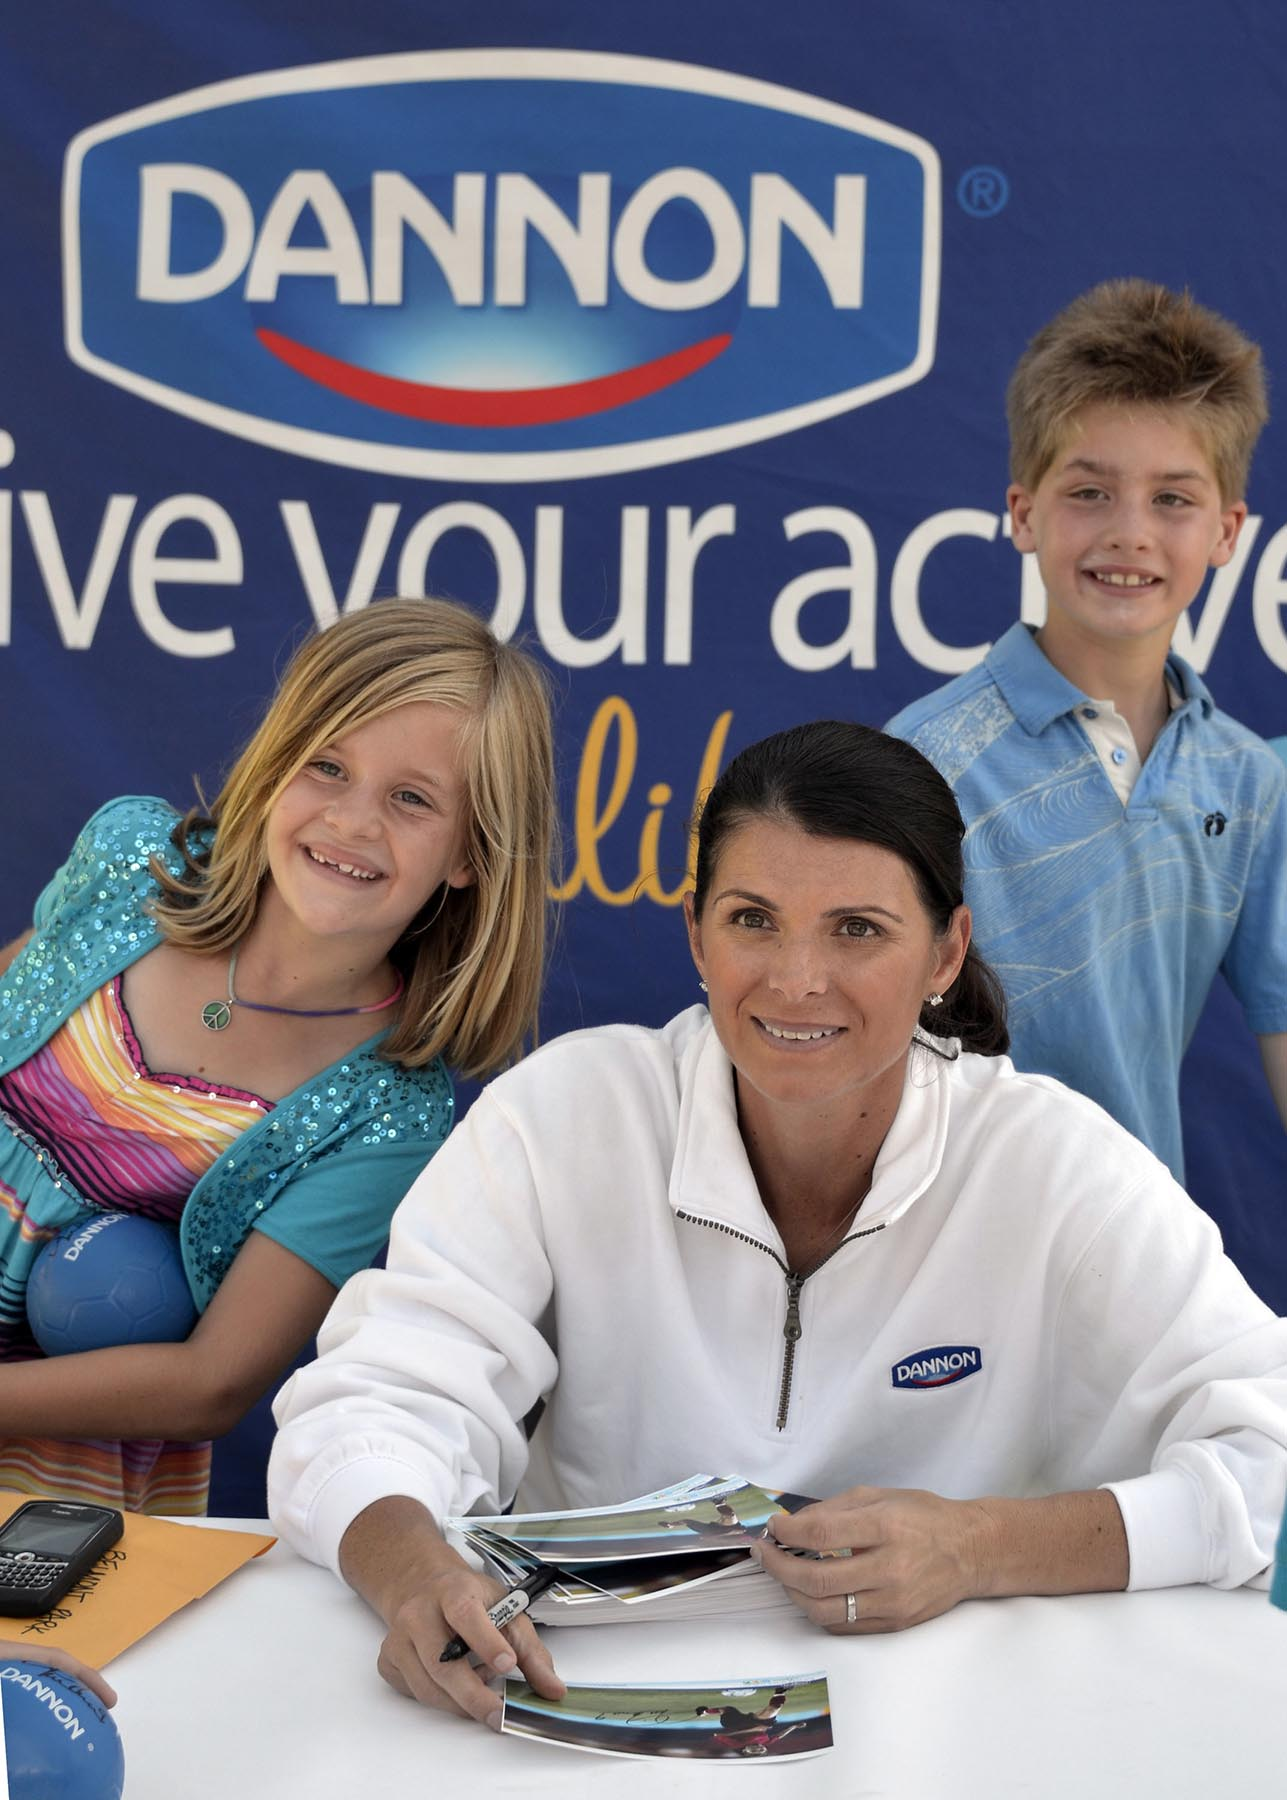 Dannon Live Your Active Culture event with Mia Hamm